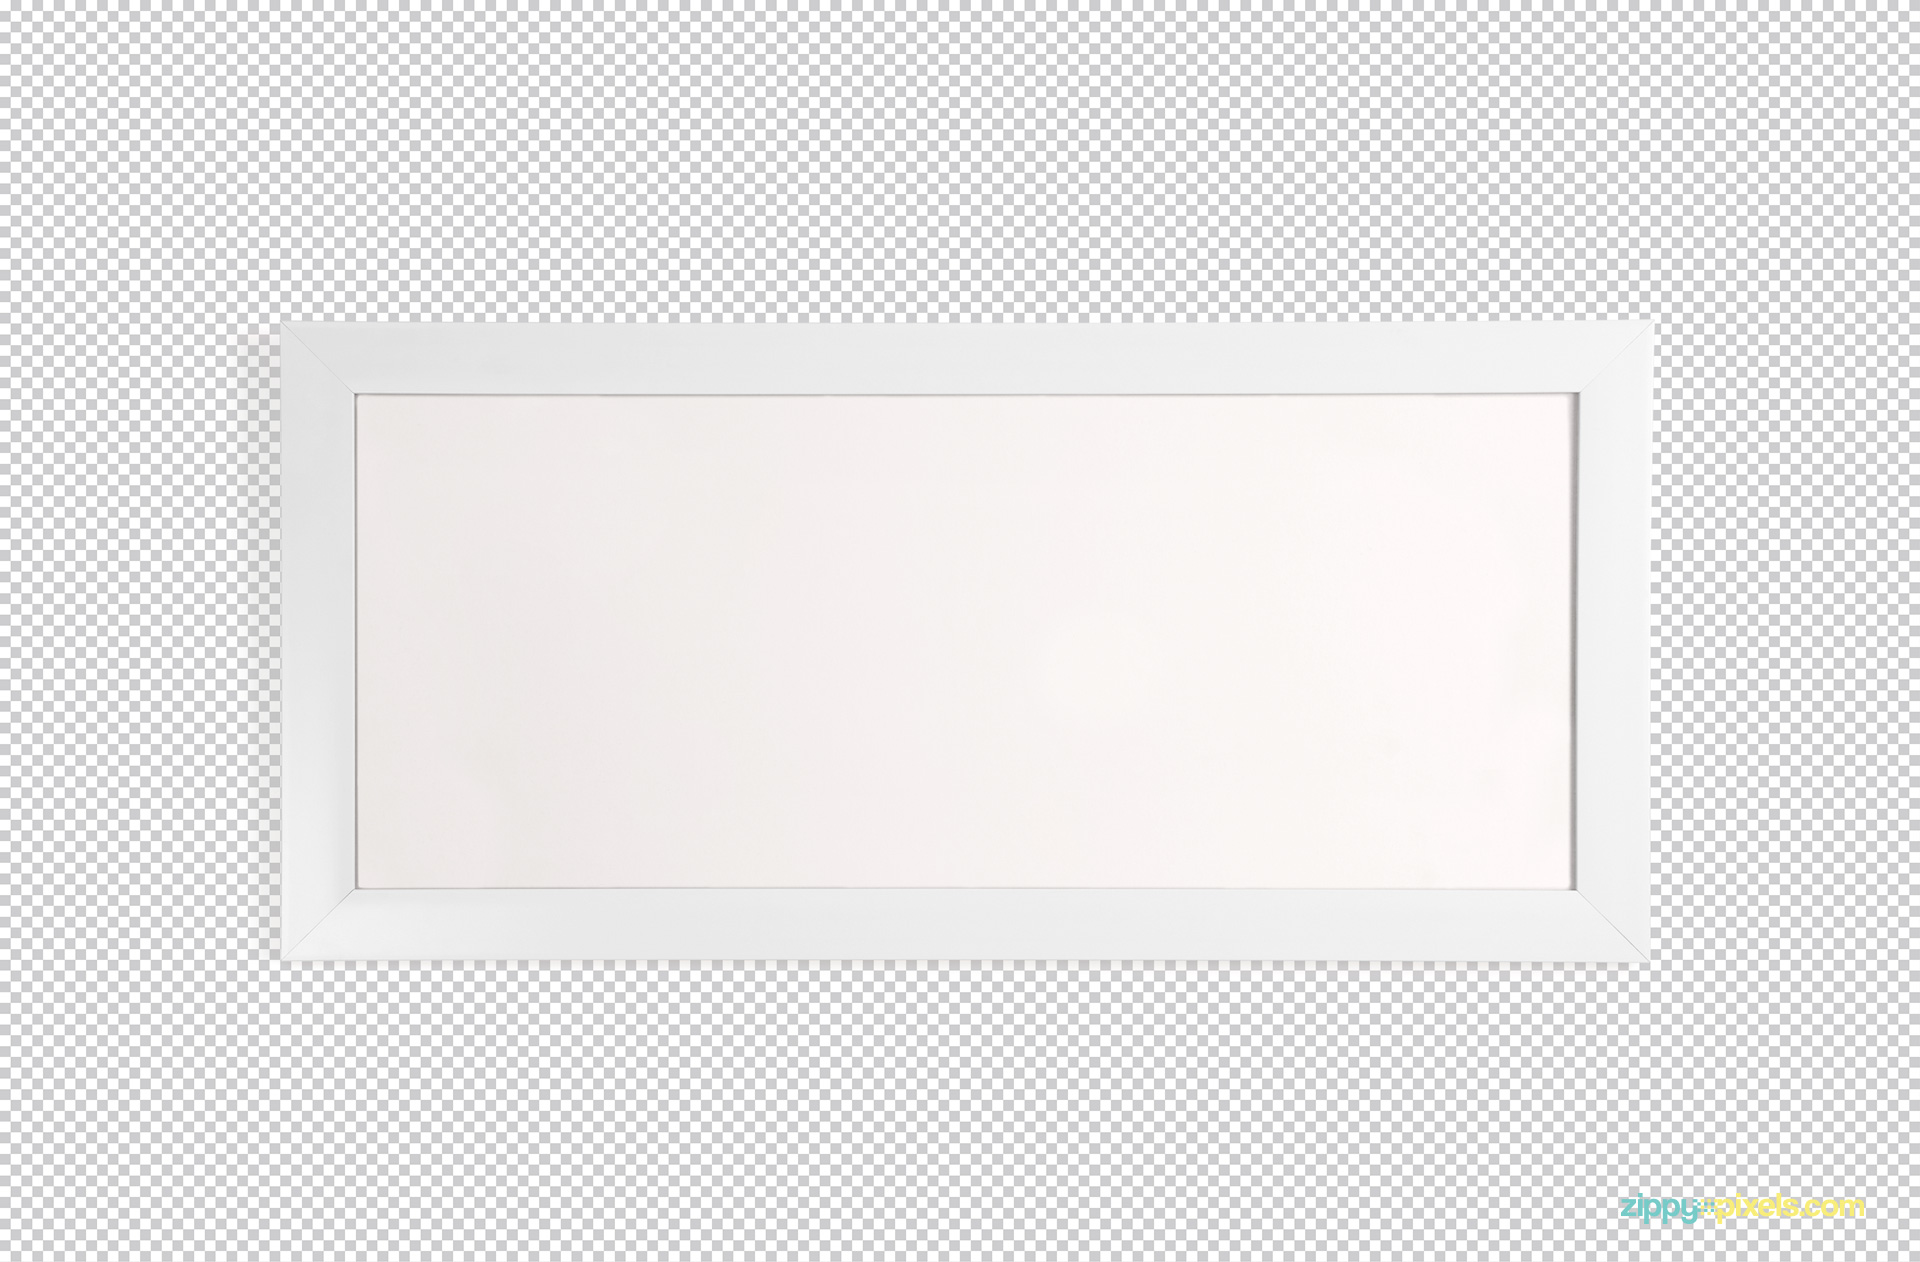 Use Adobe Photoshop to modify the photo frame mockups.